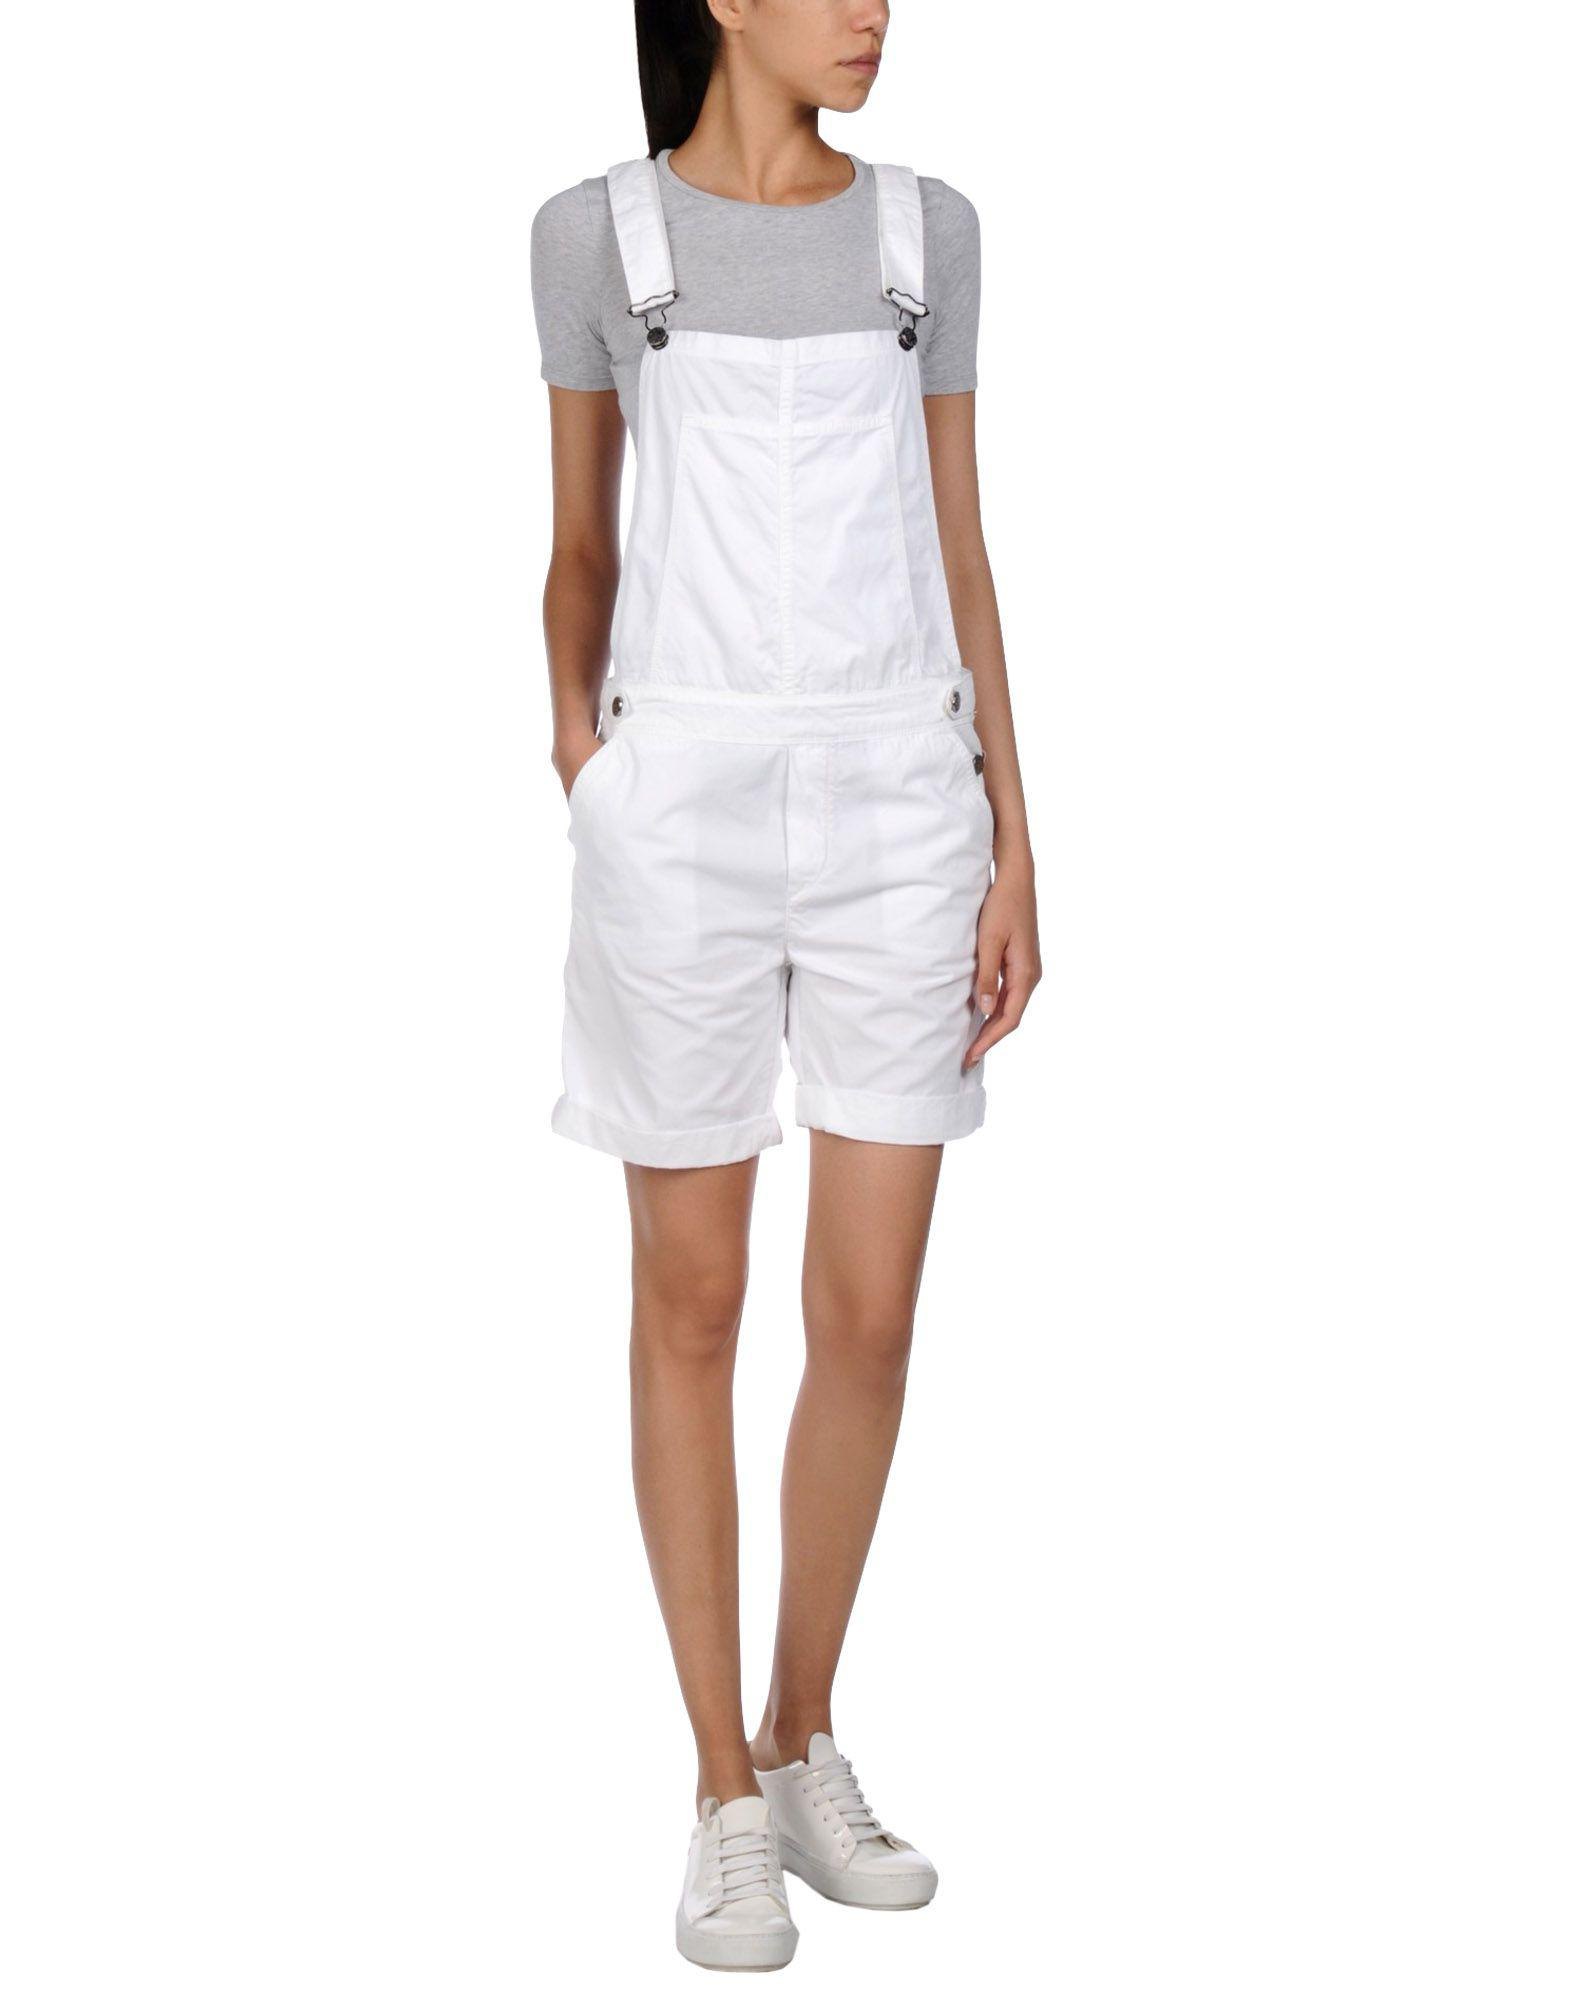 Buy Cheap Purchase DUNGAREES - Short dungarees 40weft Wide Range Of For Cheap Cheap Online XZHNA0mq